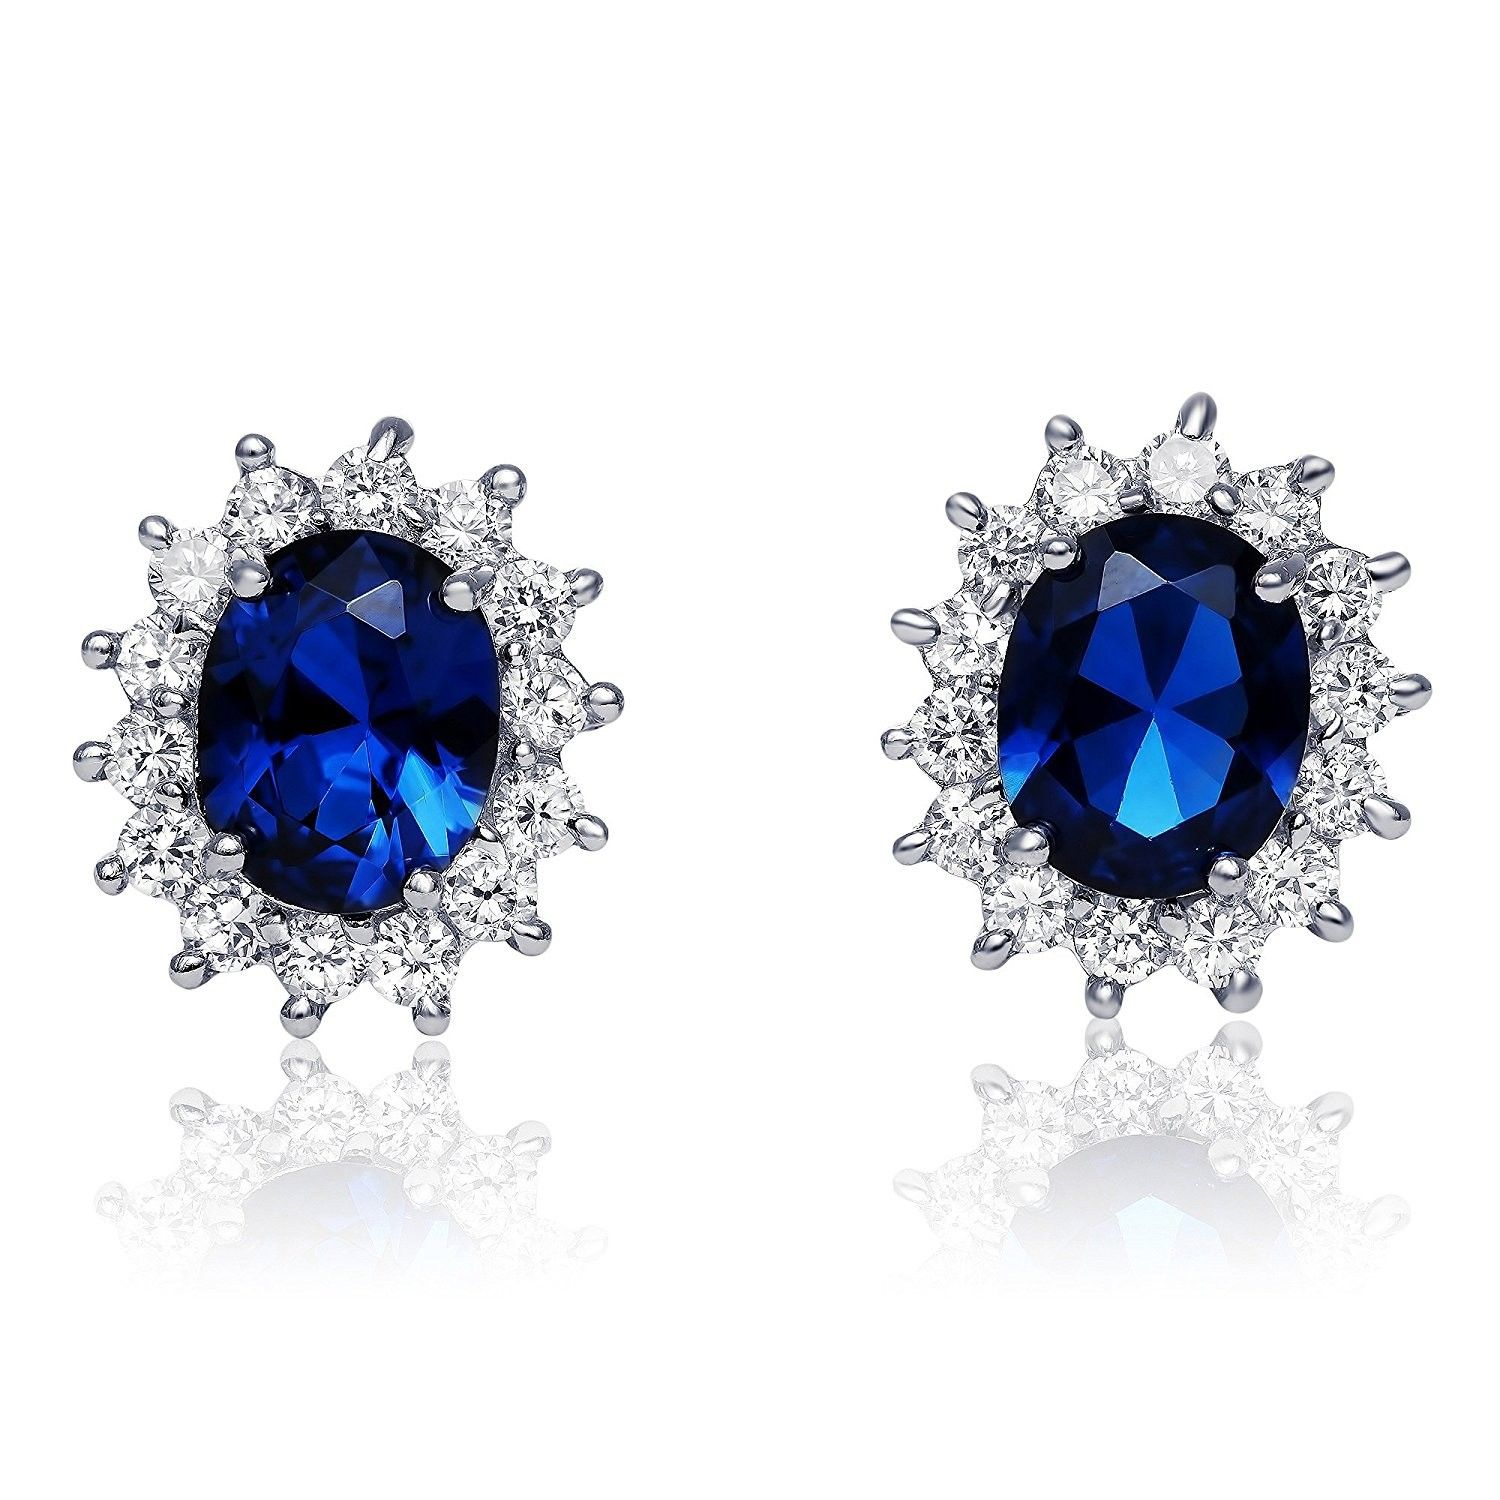 d0f18c137 Sterling Silver Simulated Blue Sapphire with Clear Cubic Zirconia Princess  Stud Earrings- 17mm - CR12JD9DVL5 - Earrings, Stud #earrings #jewelry ...